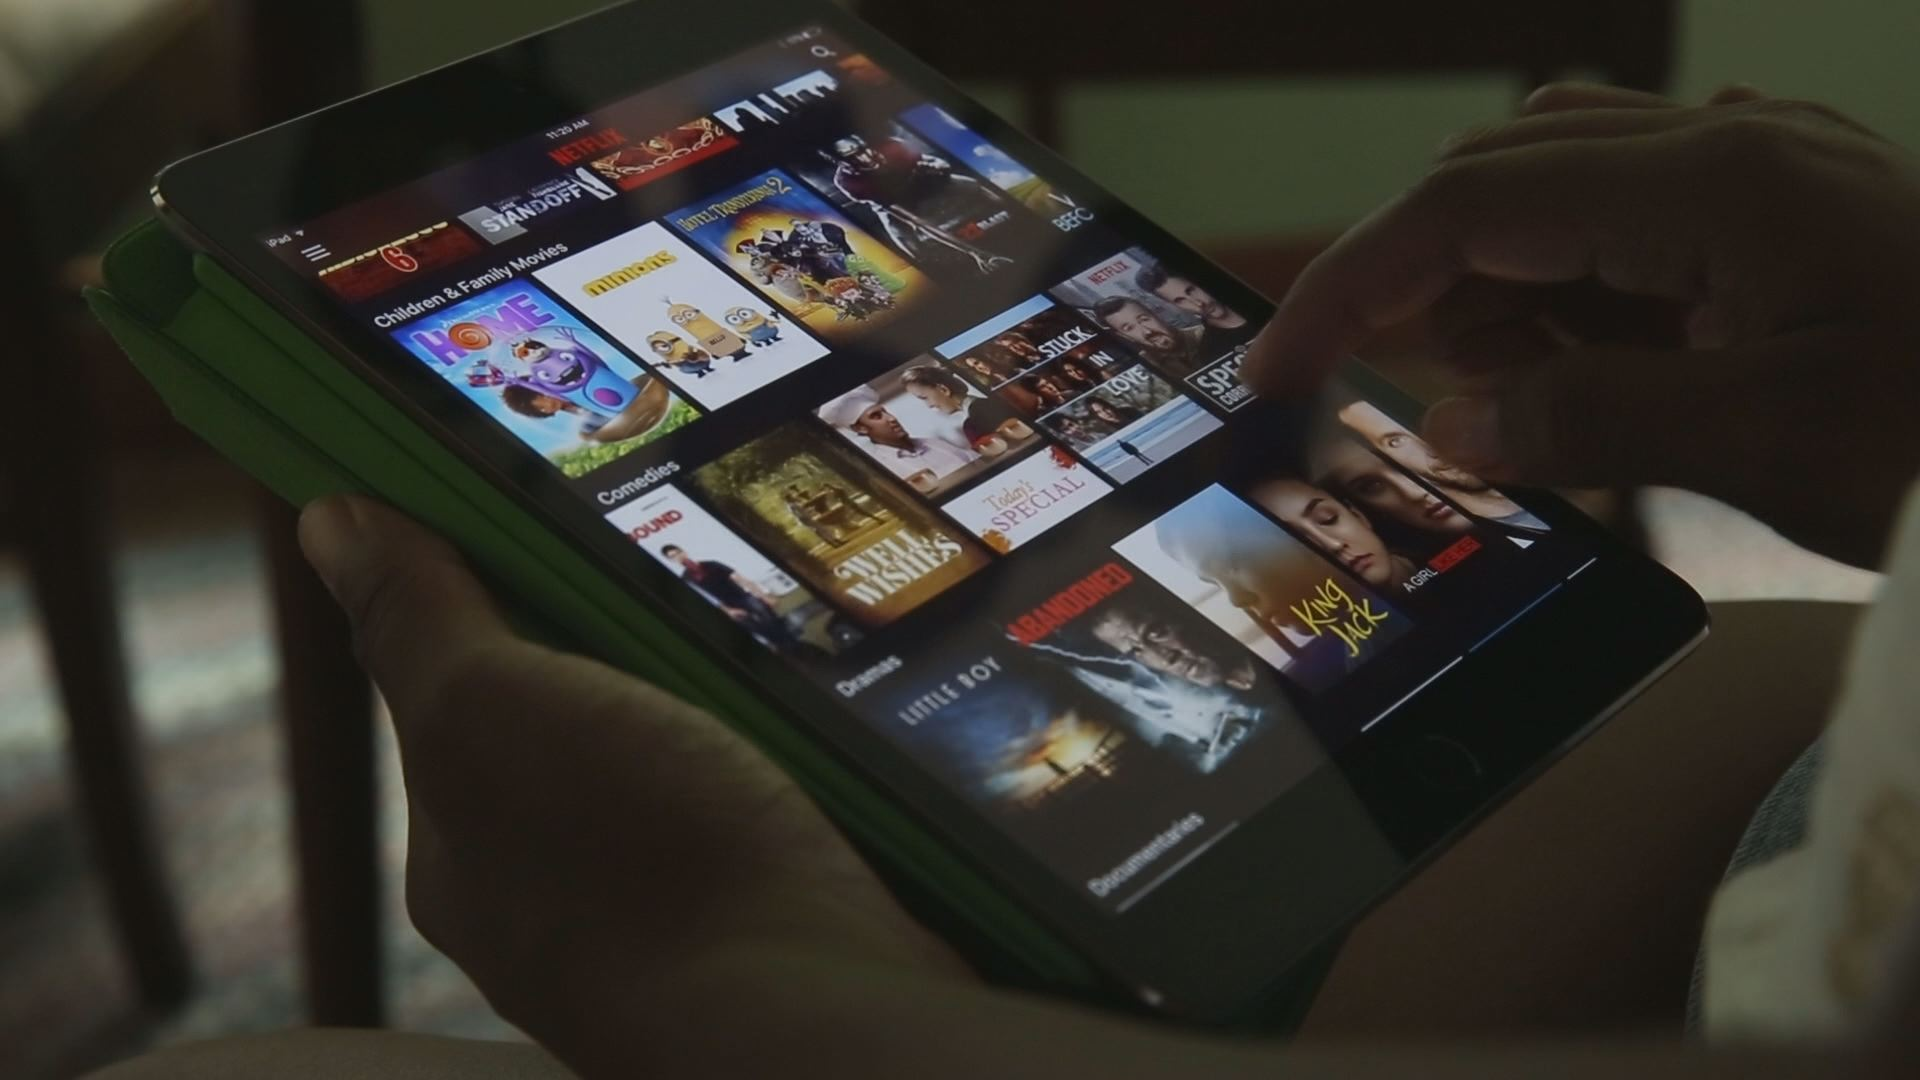 netflix - strategy analysis essay Executive summary netflix business model and strategy introduction the following is an executive summary outlining the key issues facing netflix in its.